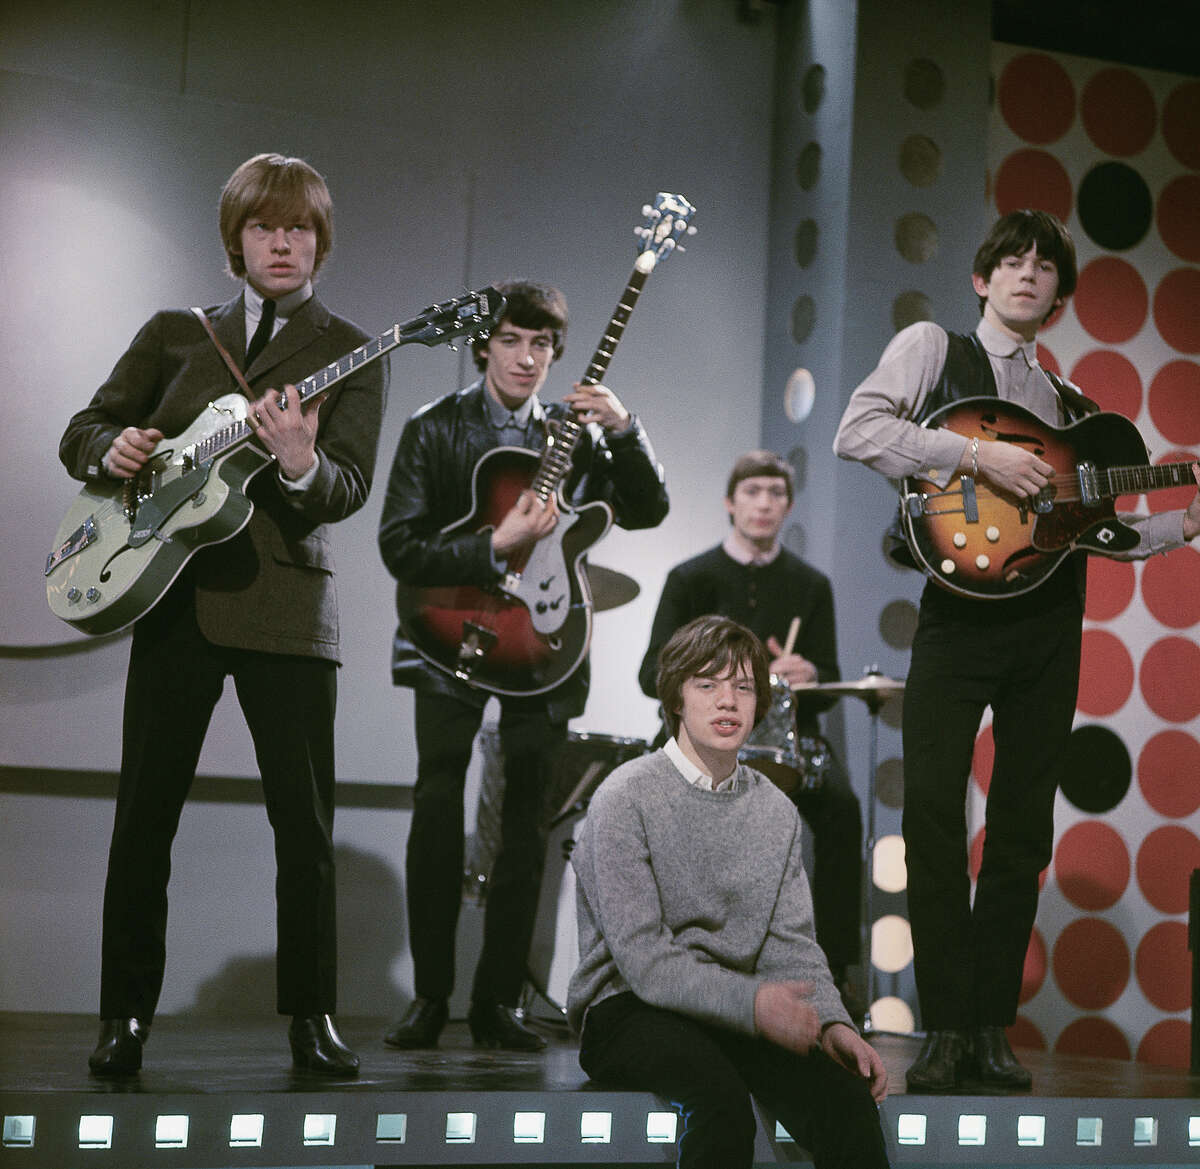 The Rolling Stones, 1963. Left to right: Brian Jones (1942 - 1969), Bill Wyman, Mick Jagger, Charlie Watts and Keith Richards.